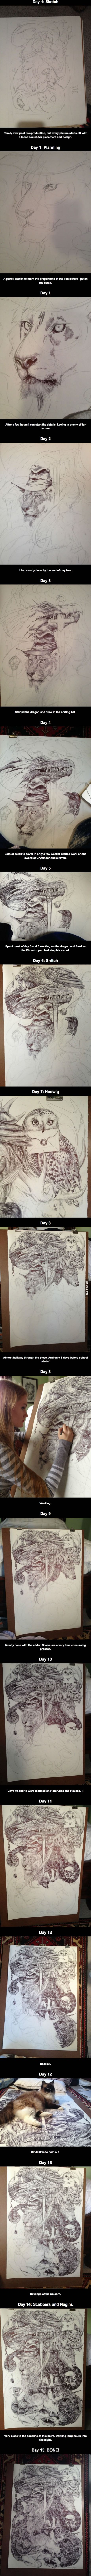 A massive Harry Potter themed drawing. How bloody incredible, I mean truly amazing and awe inspiring